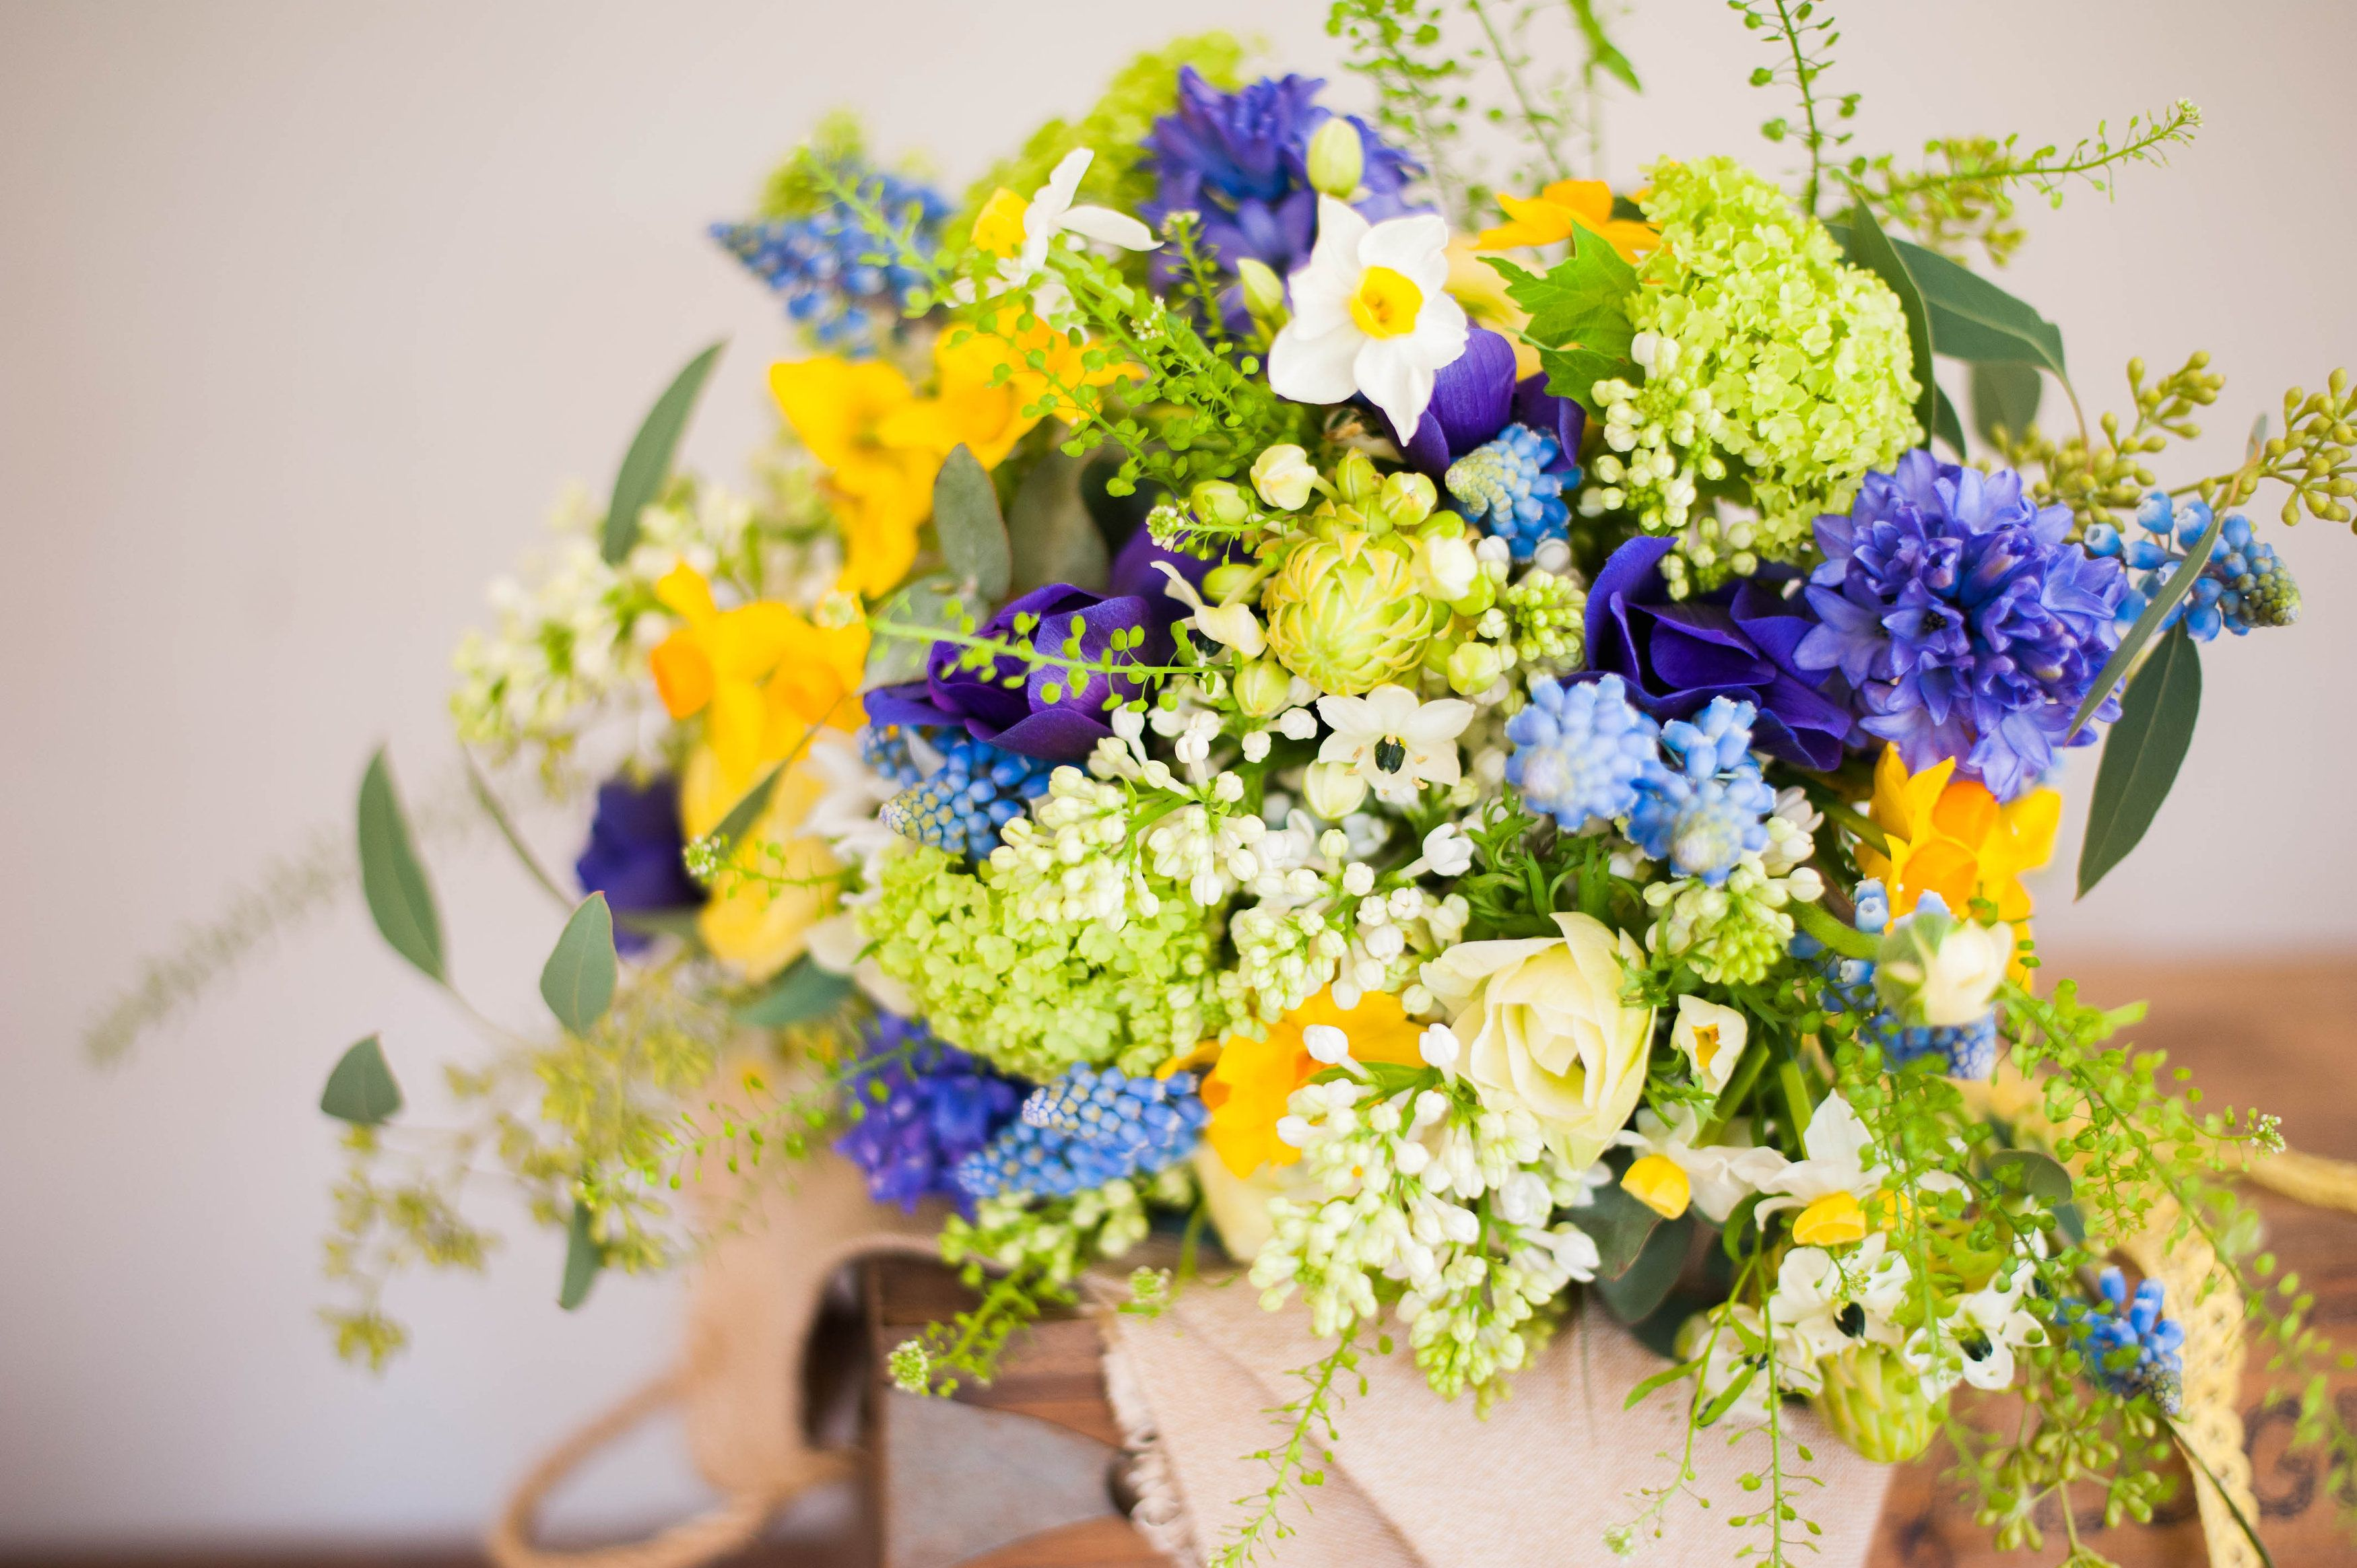 Images for yellow and blue bouquet flower pinterest florists images for yellow and blue bouquet izmirmasajfo